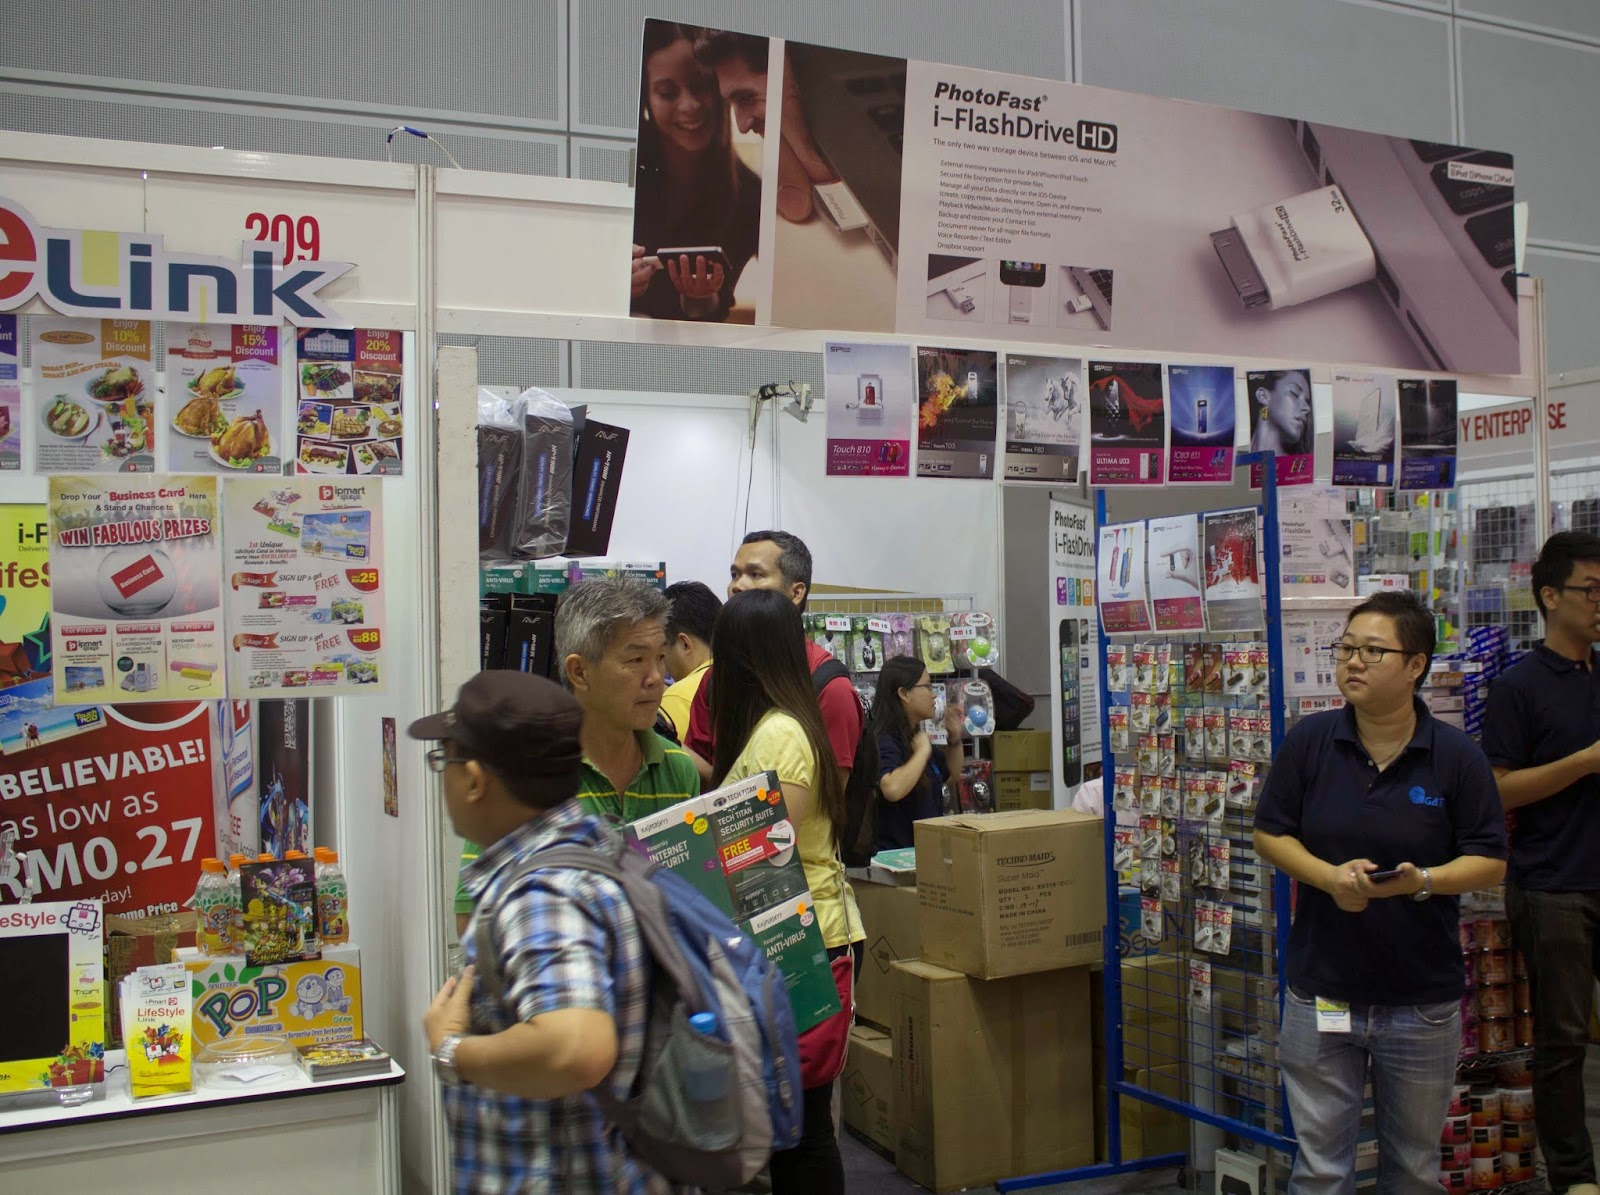 Coverage of PIKOM PC Fair 2014 @ Kuala Lumpur Convention Center 337